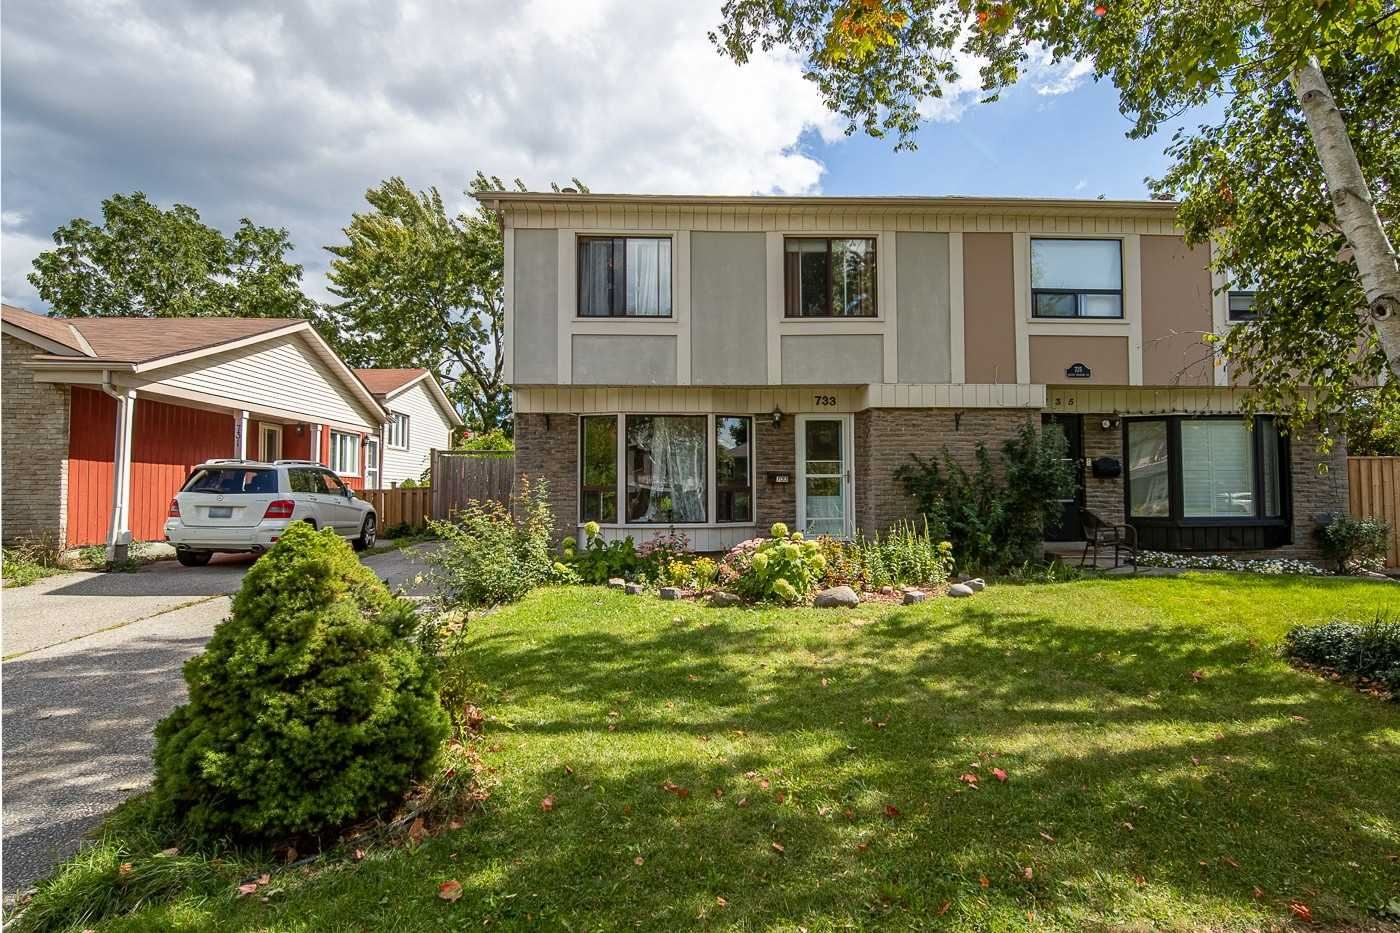 733 Green Meadow Cres, Mississauga, ON L5A2V3 - MLS#: W5372143